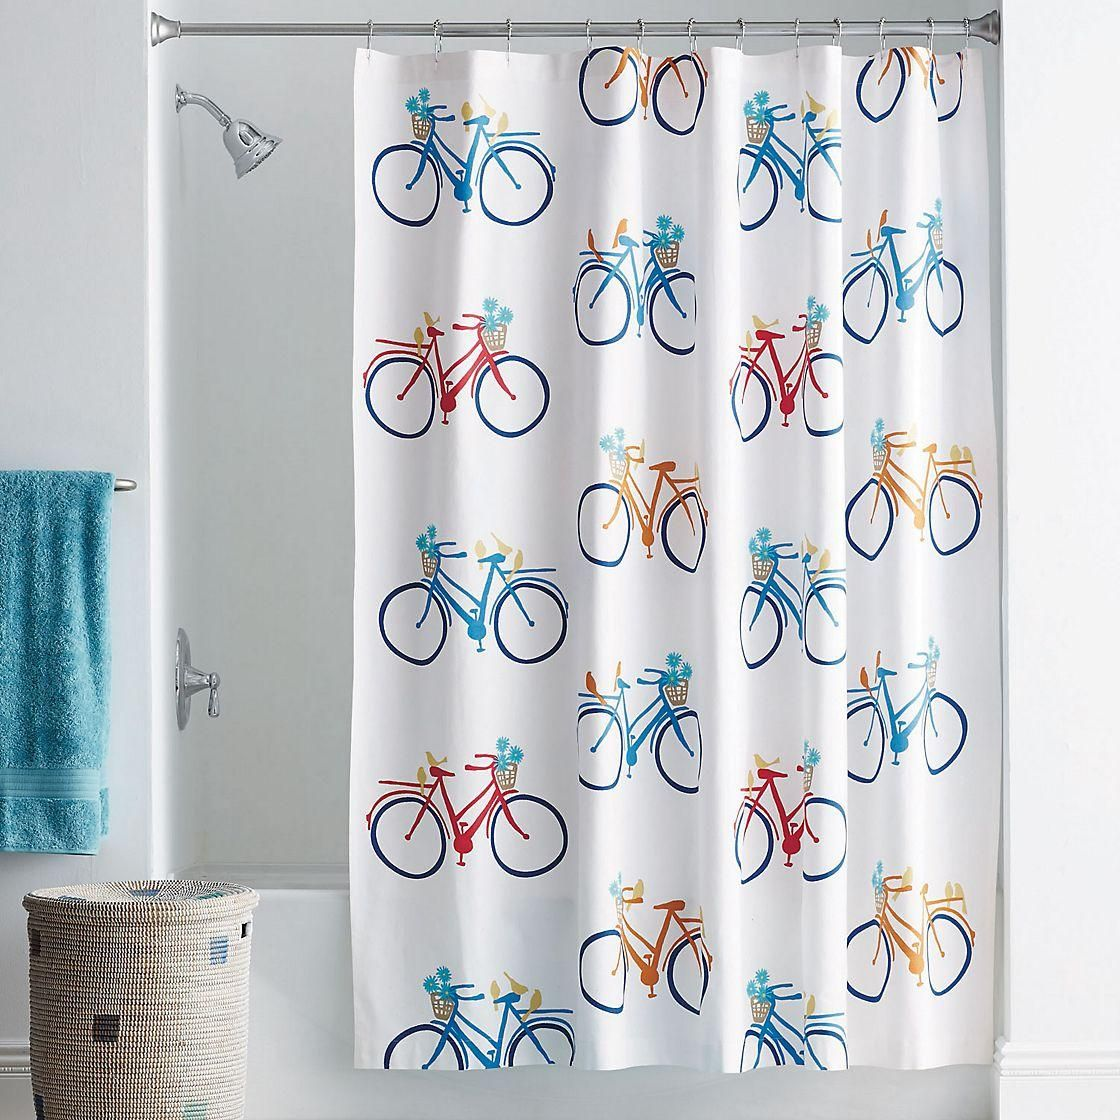 Joy Ride Shower Curtain The Company Store Curtains